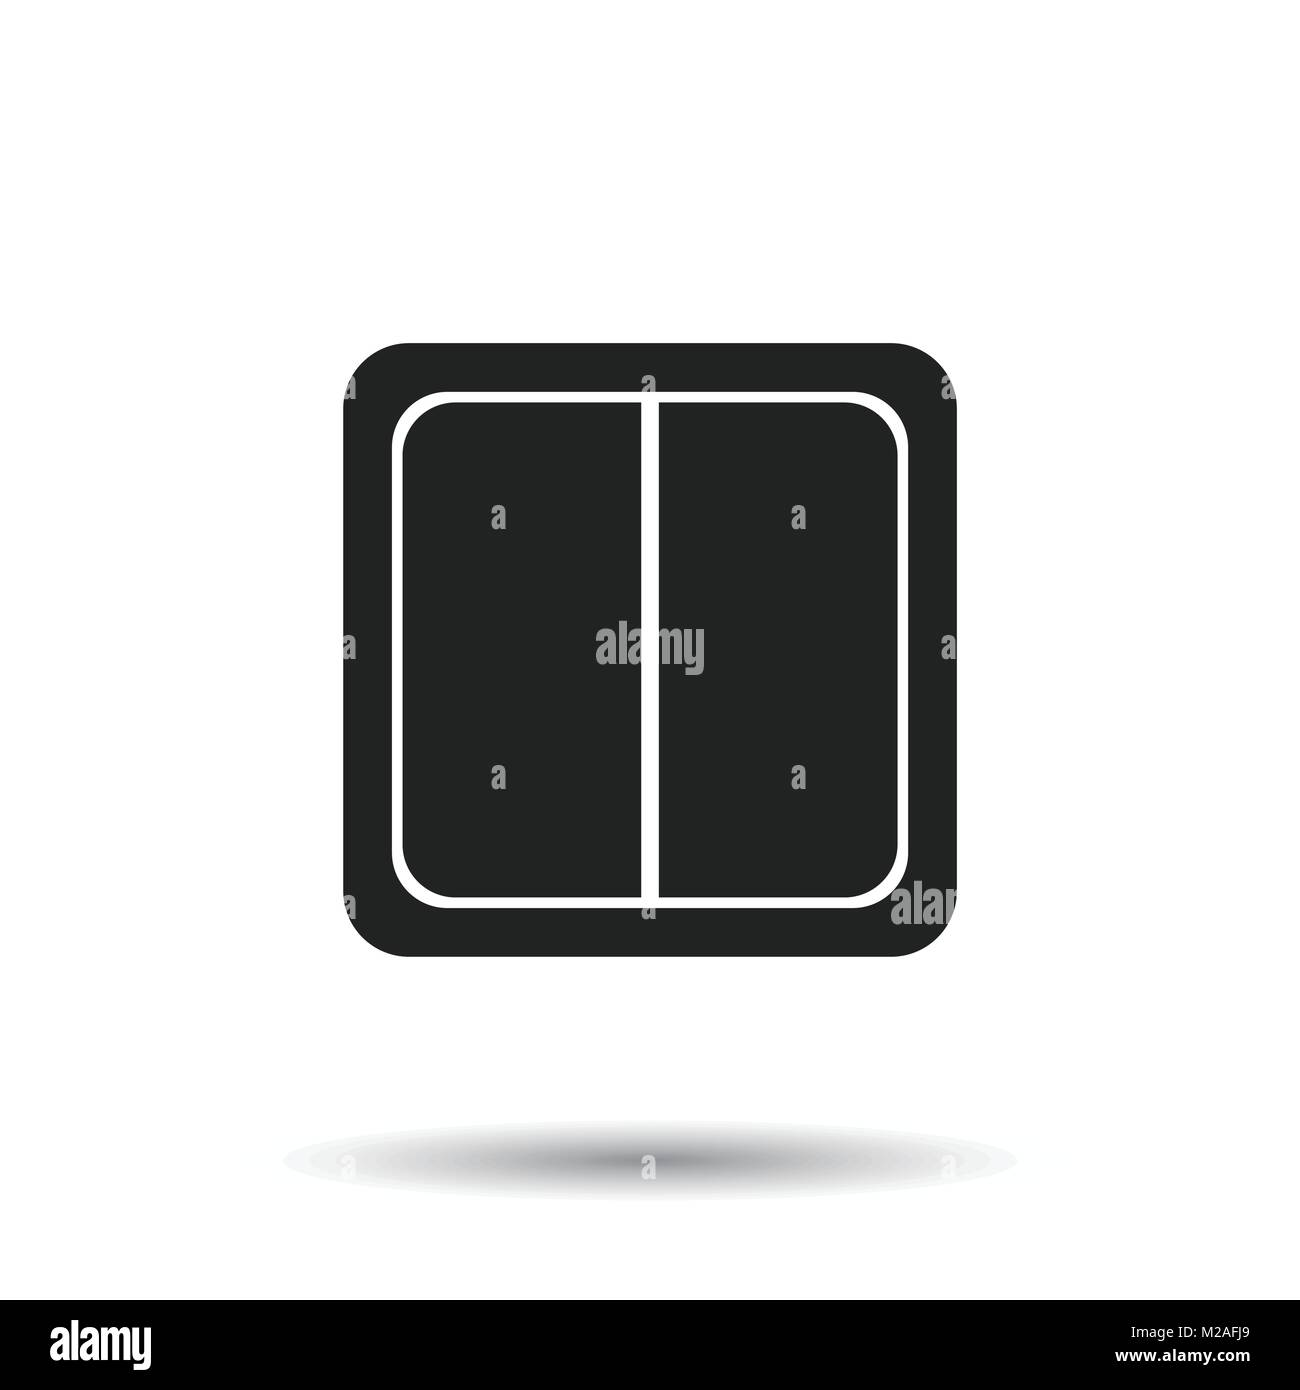 Switch Flat Stockfotos & Switch Flat Bilder - Alamy